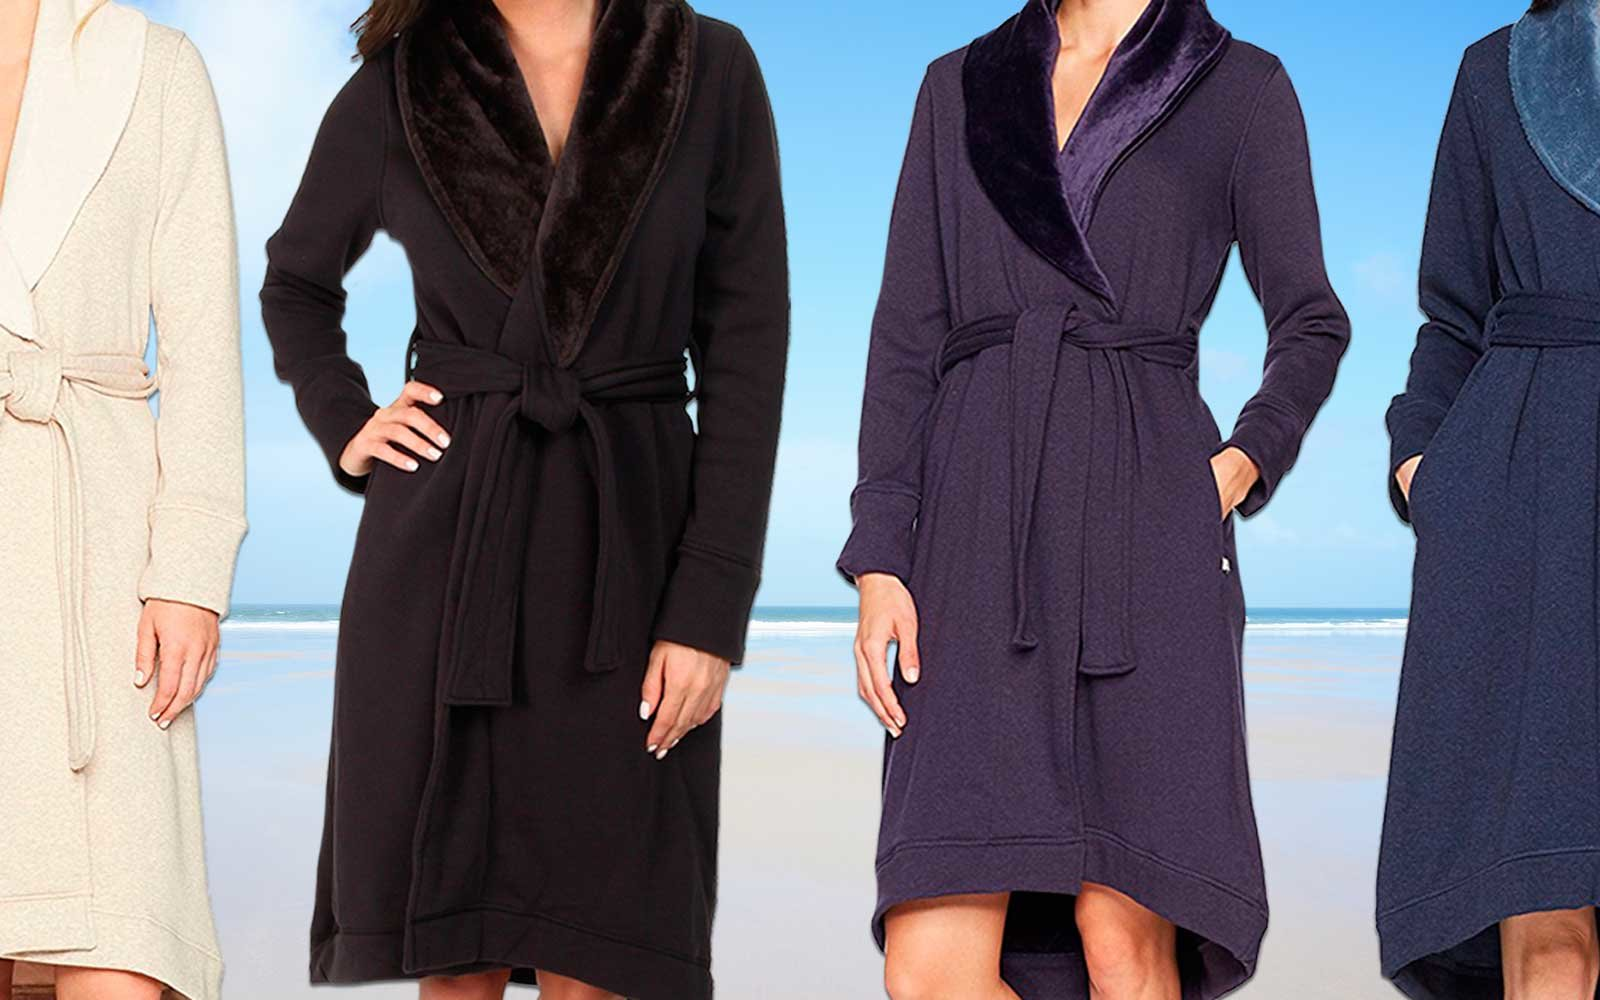 The Ugg Duffield Robe Is the Easiest Way to Have a Luxury Staycation ... 2d6c35be2721